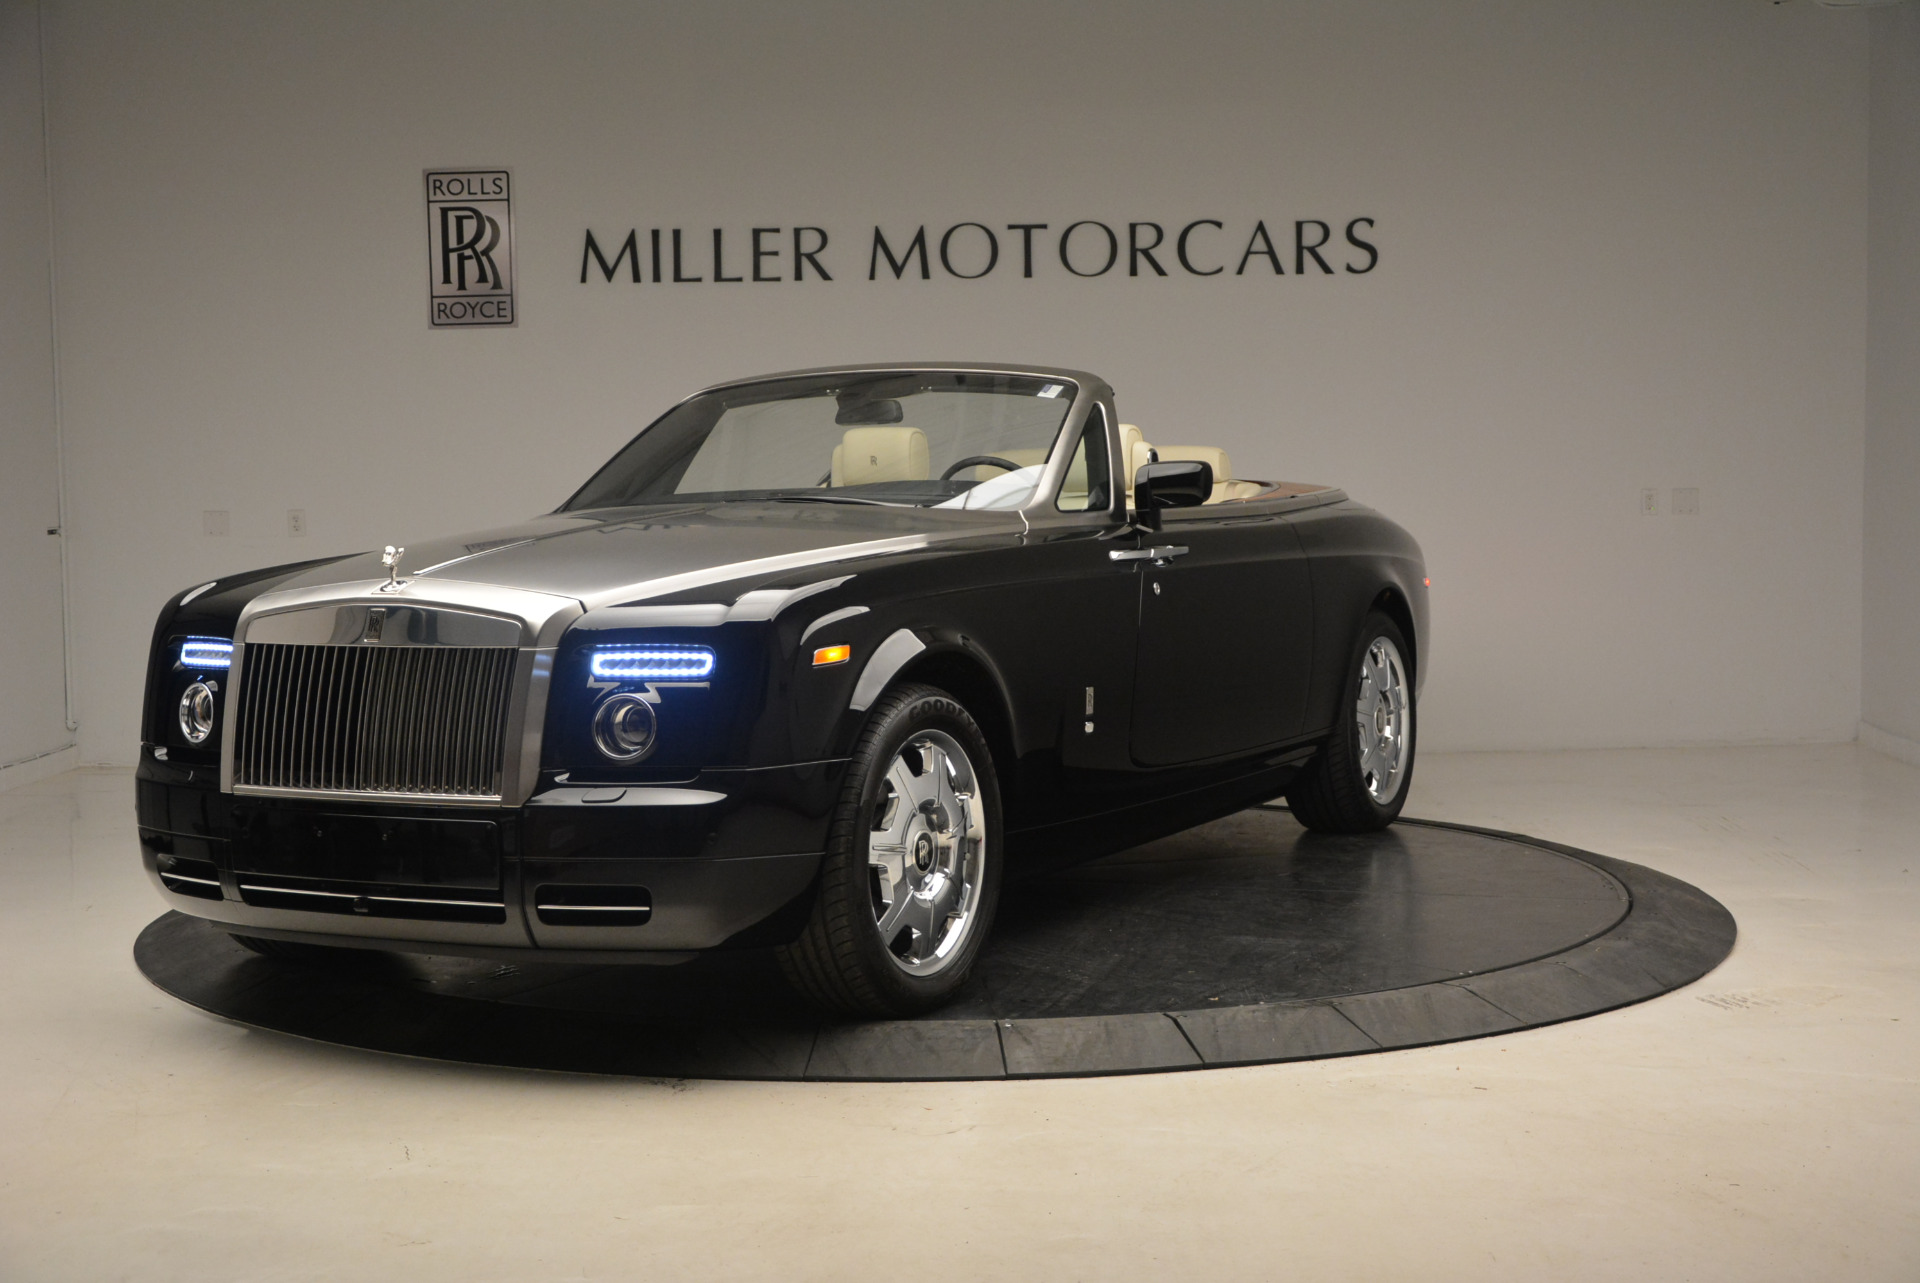 Used 2009 Rolls-Royce Phantom Drophead Coupe for sale Sold at Rolls-Royce Motor Cars Greenwich in Greenwich CT 06830 1